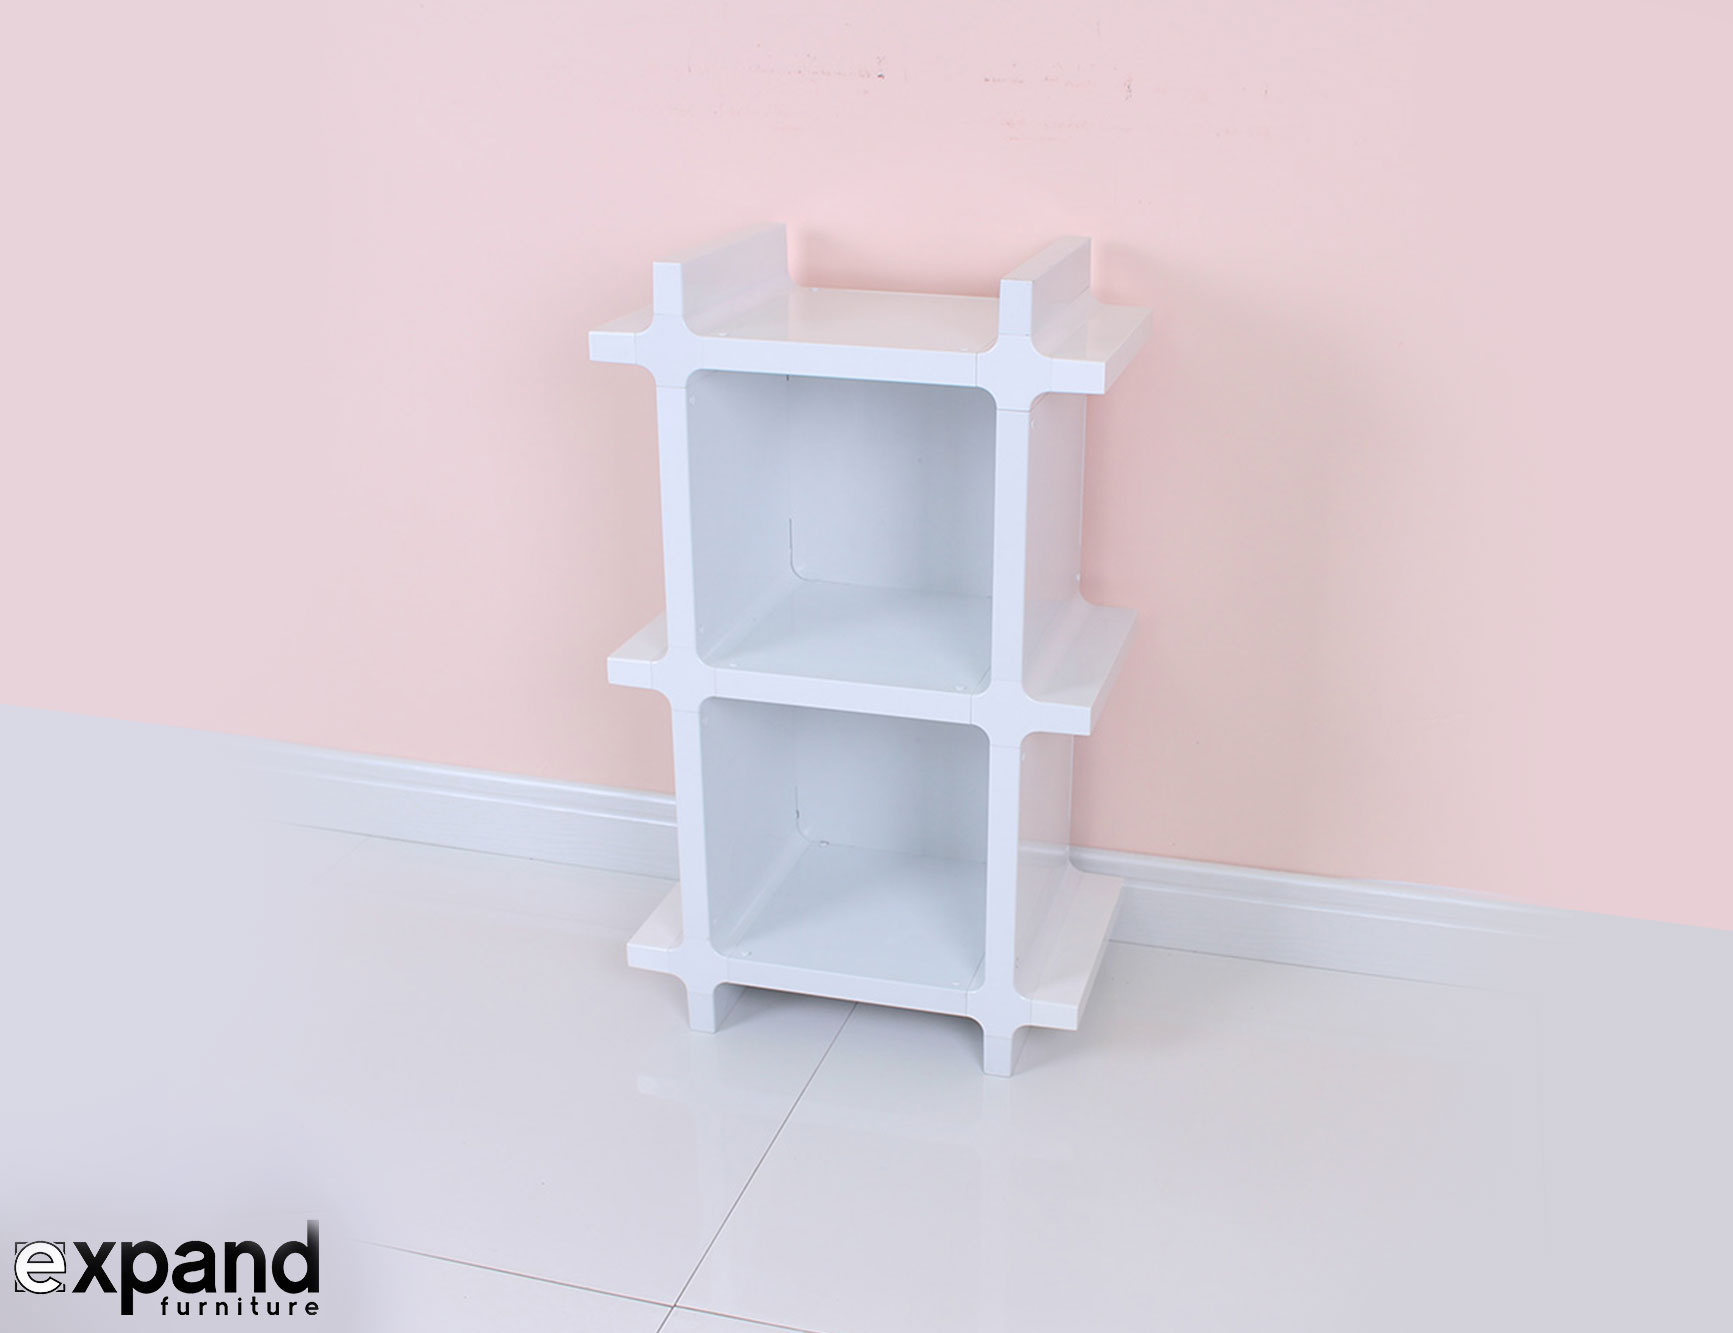 decorative ladder shelf side table | expand